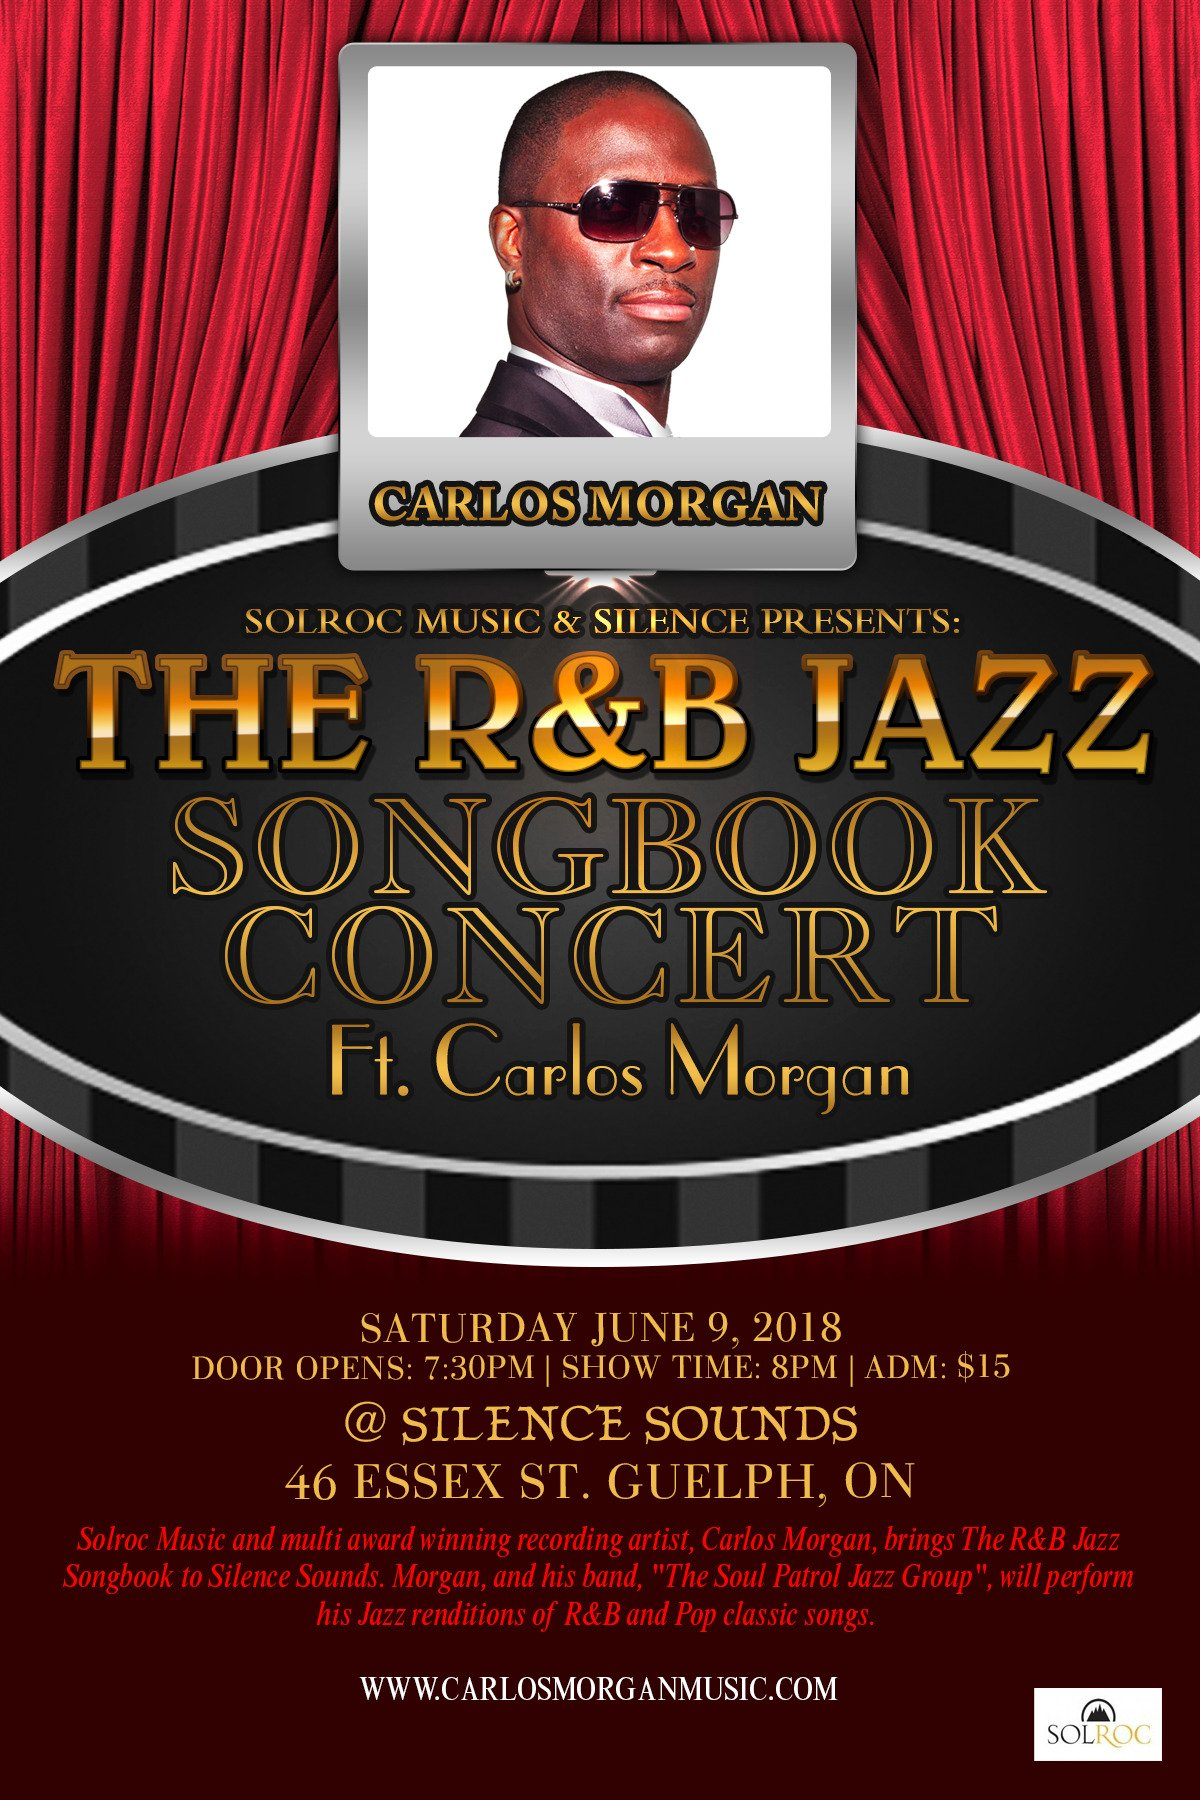 "Carlos Morgan Music on Twitter: ""Solroc Music & Silence Presents: ""The R&B Jazz Songbook Concert"" Ft. Carlos Morgan inside ""Silence Sounds""; 46 Essex St. in Guelph on Sat. June 9th. Doors: 7:30 PM. Show: 8 PM. Adm: $15.00 #SolrocMusic #SilenceSounds #RnBJazzSongbook #CarlosMorgan #Jazz #RnB #CanadianJazz… https://t.co/H2pA2hI7NQ"""